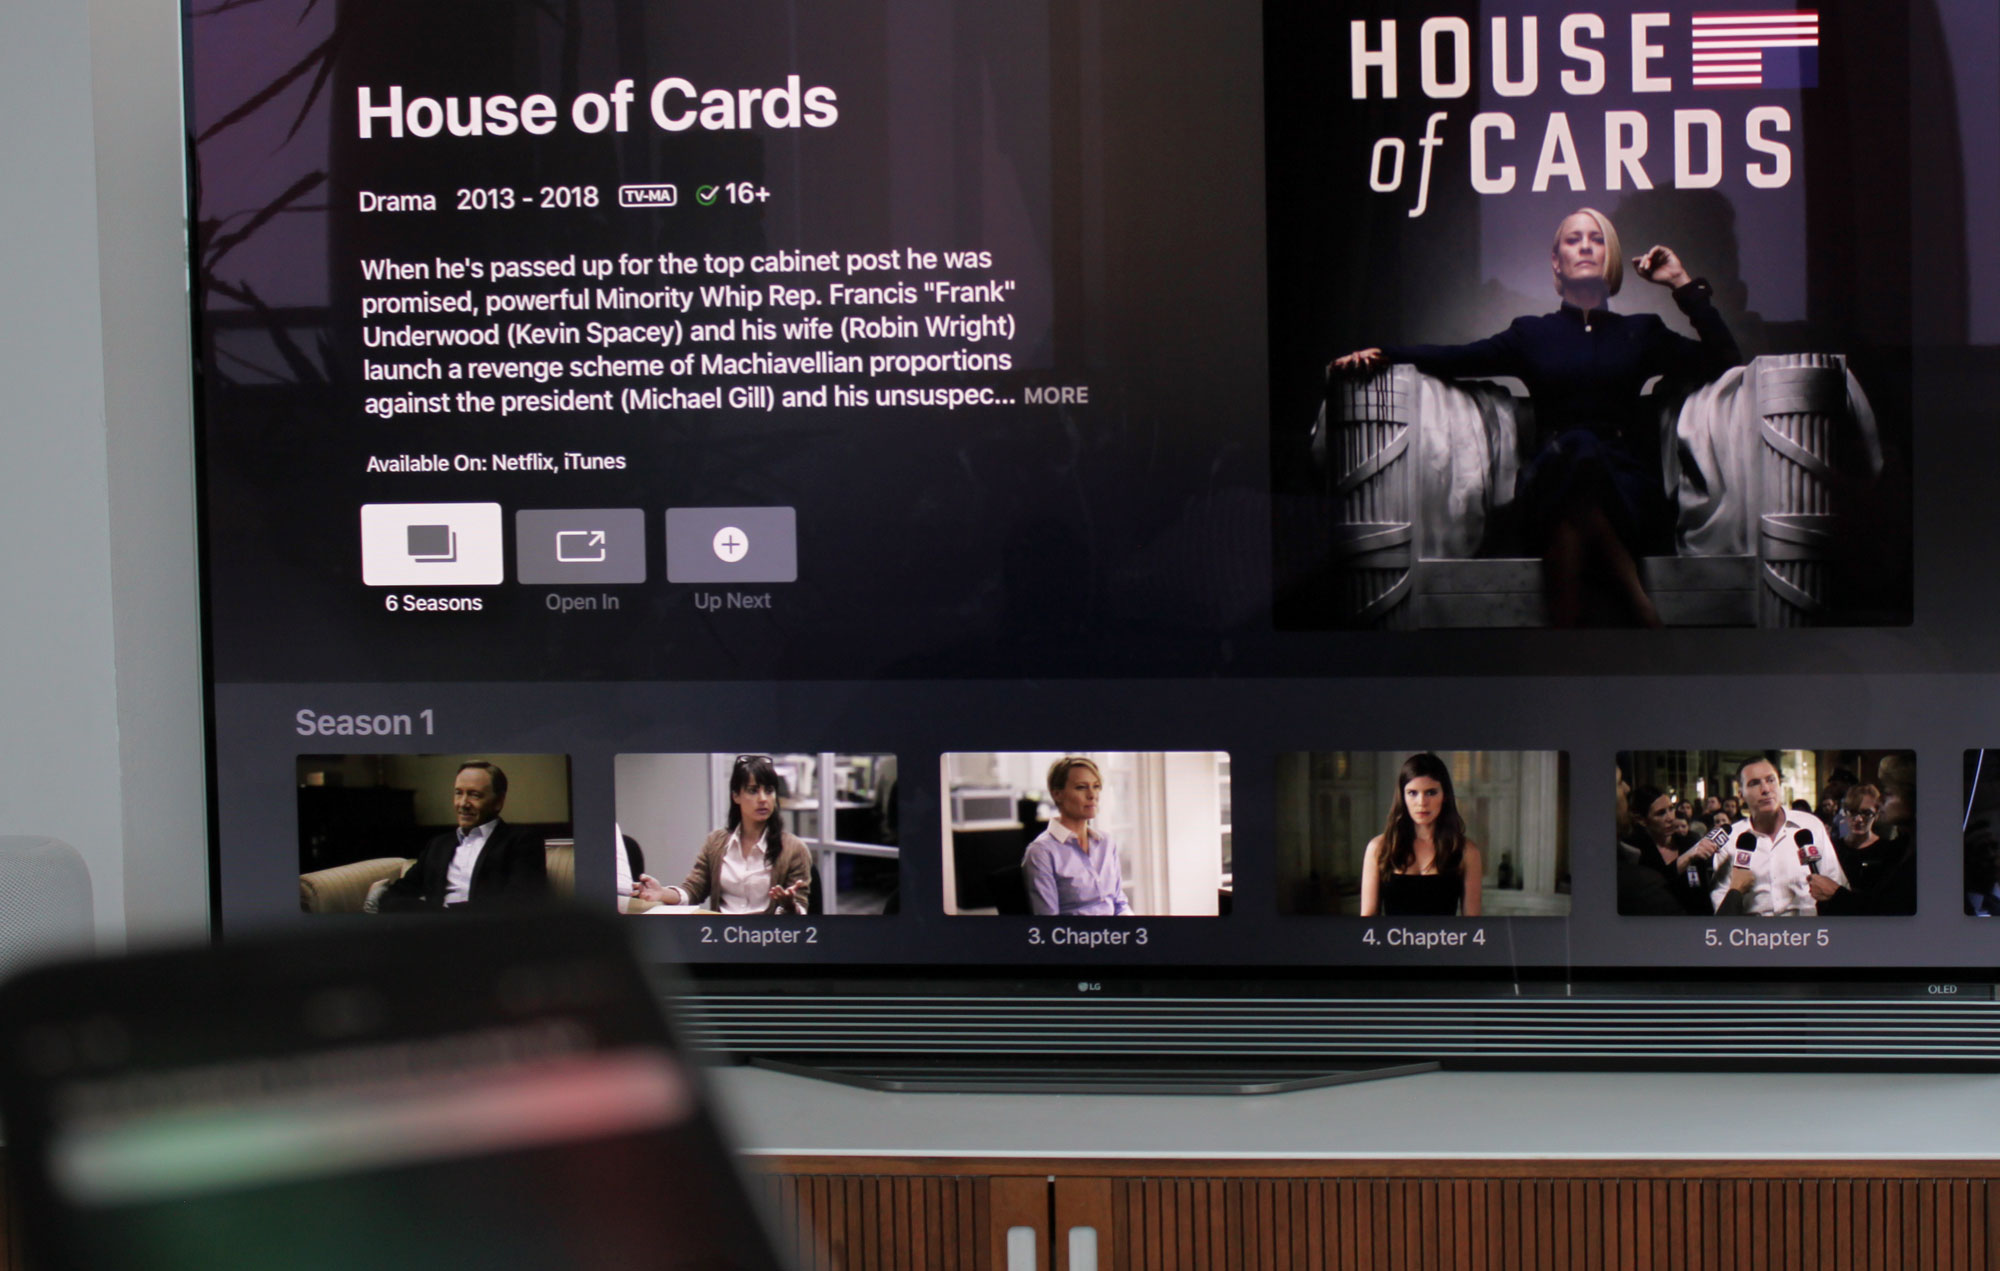 Apple releases tvOS / iOS 12 2 with Siri-to-TV, new AirPlay